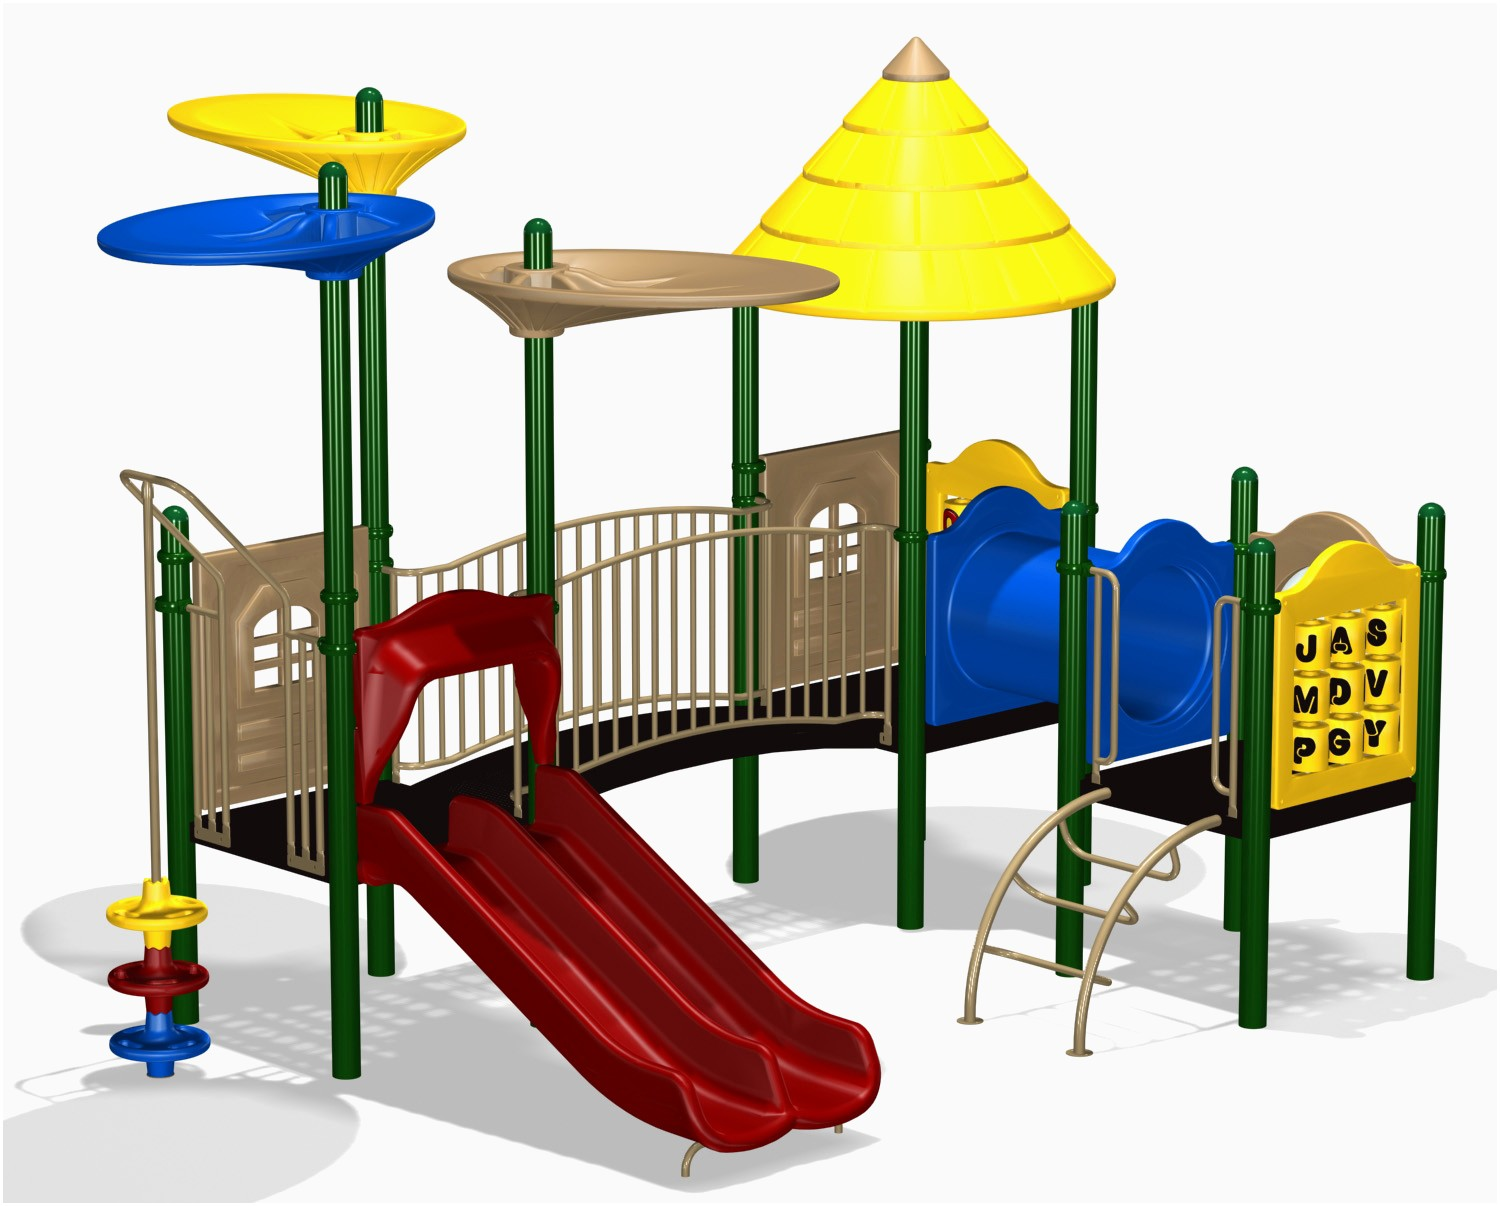 Playground clipart. Luxury clip art equipment